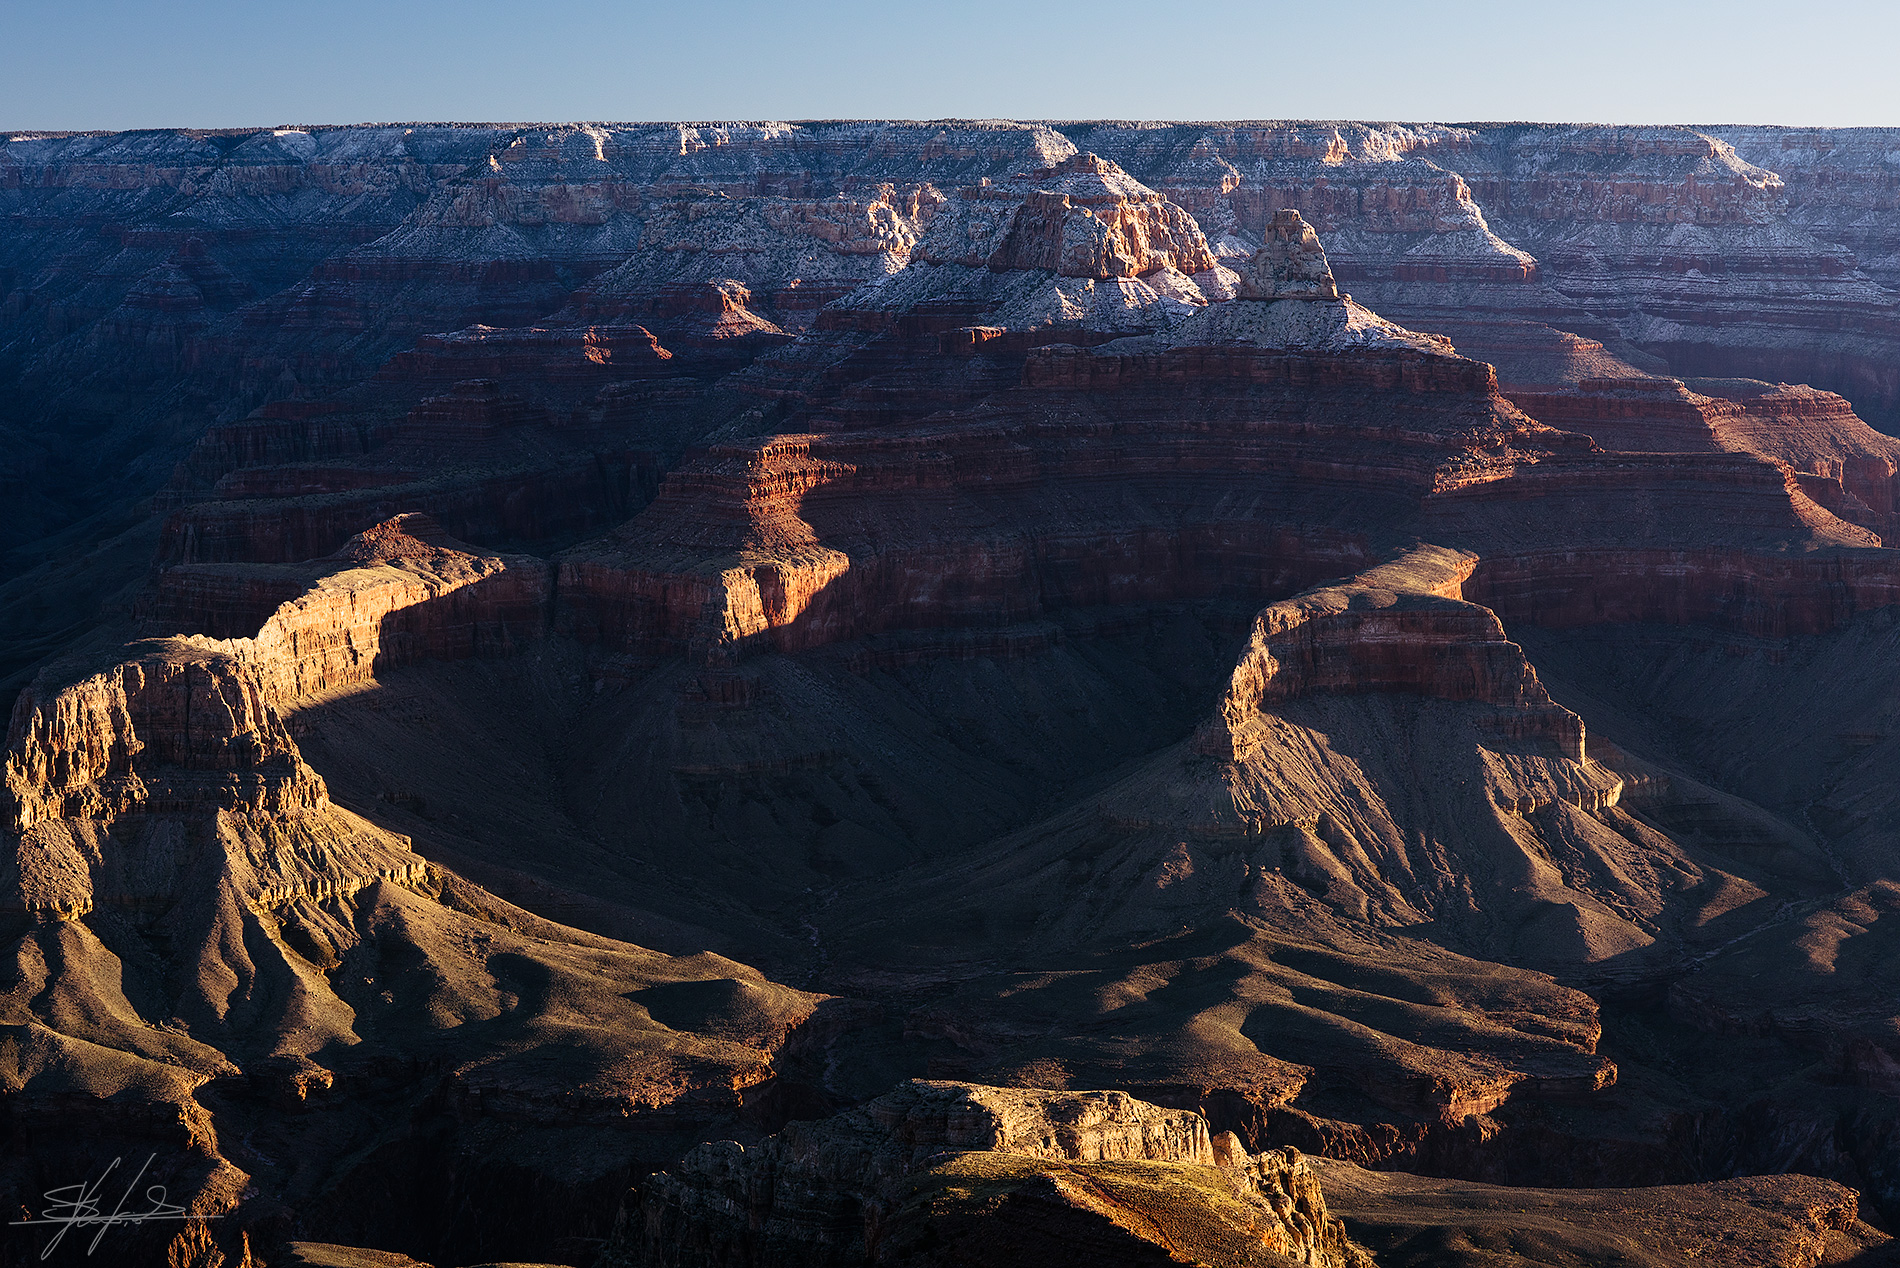 Lights & Shadows upon Gran Canyon